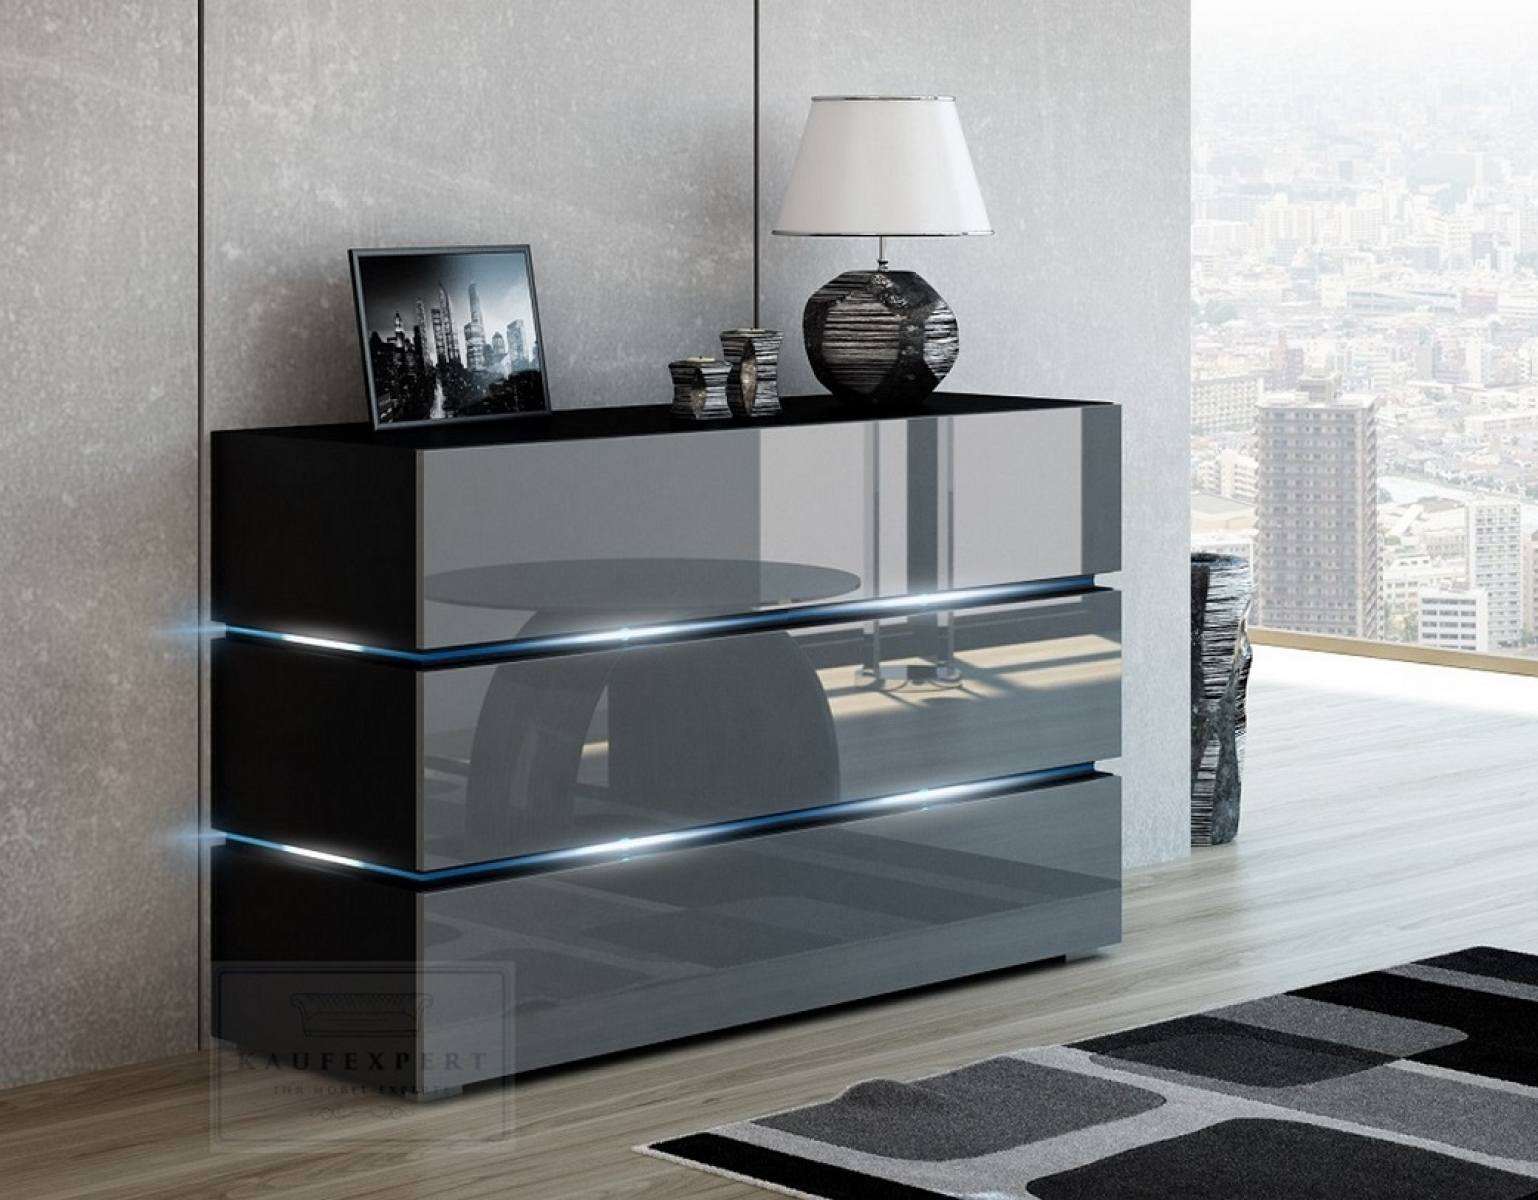 kaufexpert kommode shine sideboard 120 cm grau hochglanz schwarz led beleuchtung modern design. Black Bedroom Furniture Sets. Home Design Ideas